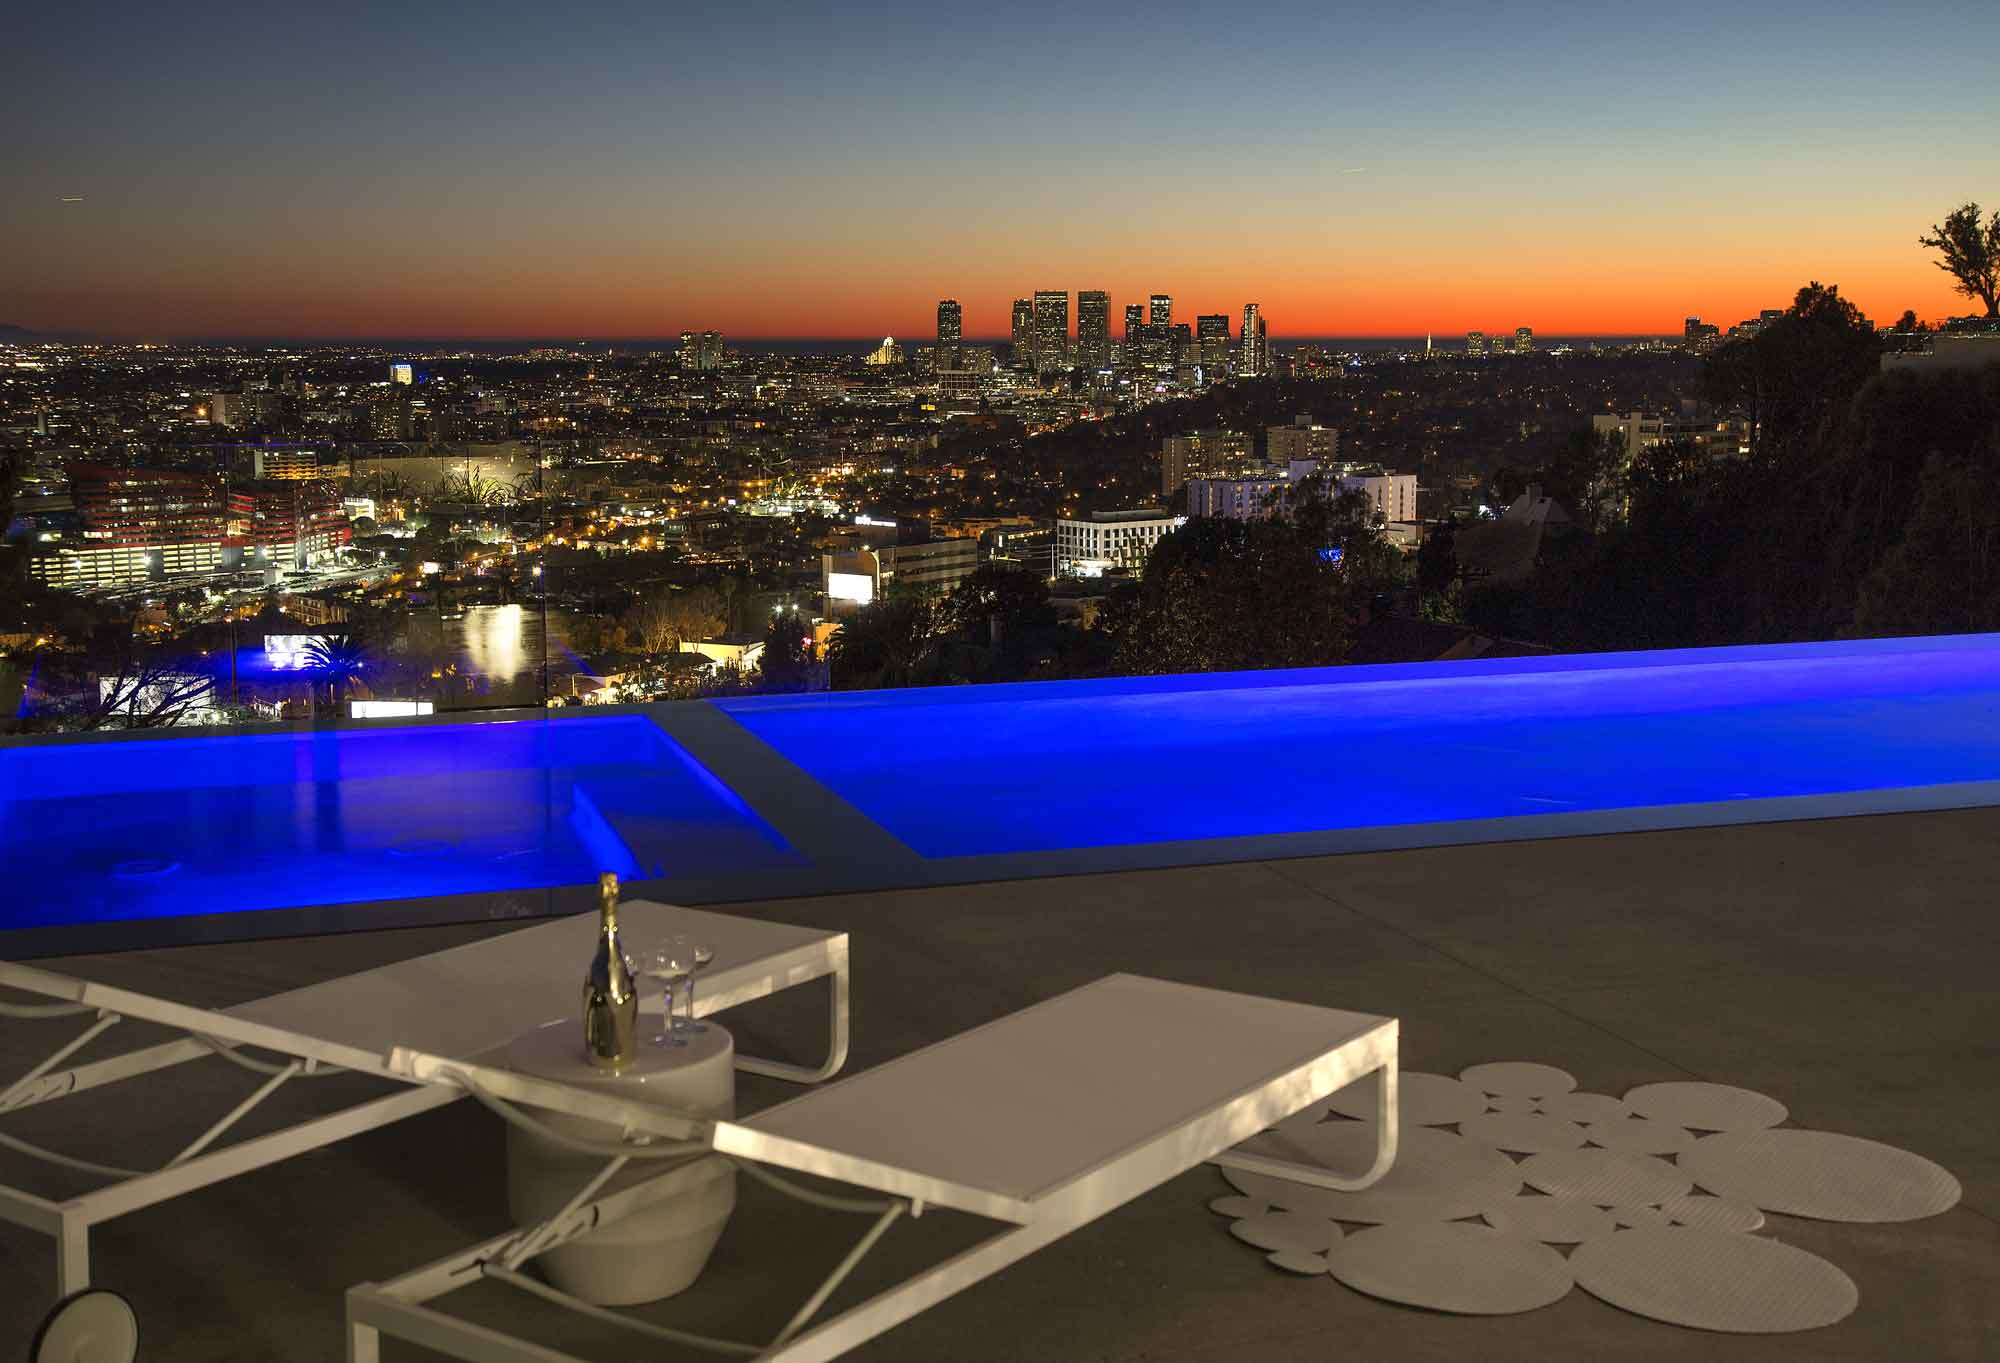 Rising up from one of the last great promontory view sites along Sunset Strip is this one-of-a-kind contemporary design by world-renowned Belzberg Architects. This home boasts explosive views spanning downtown Los Angeles all the way west to Century City and the ocean beyond.